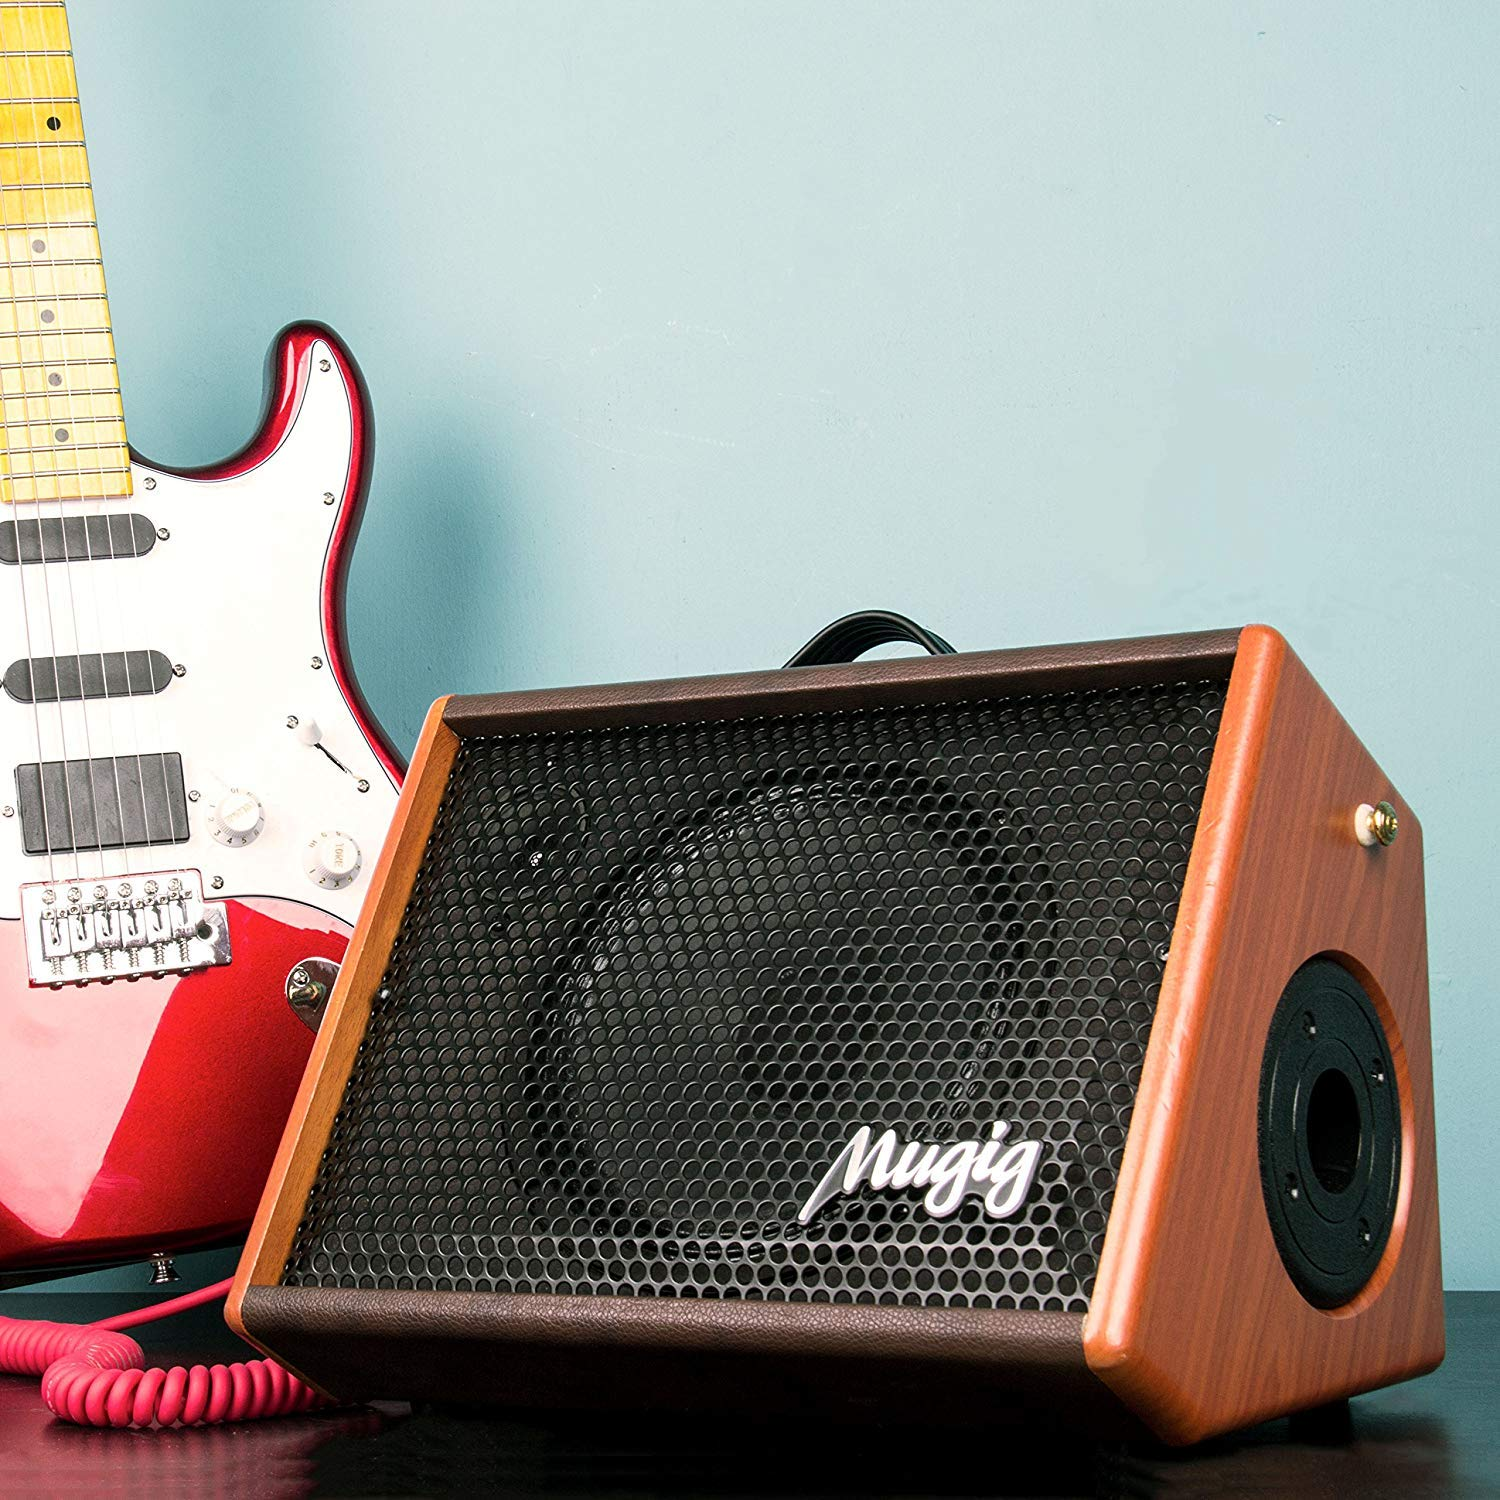 Electric Guitar Amplifier, Mugig Guitar Amplifier 25W, with 3-Band EQ, DSP Effect, Two Seperate Channel for Guitar/Micphone, Support Bluetooth/Charging/Recording/Earphone - Wooden by Mugig